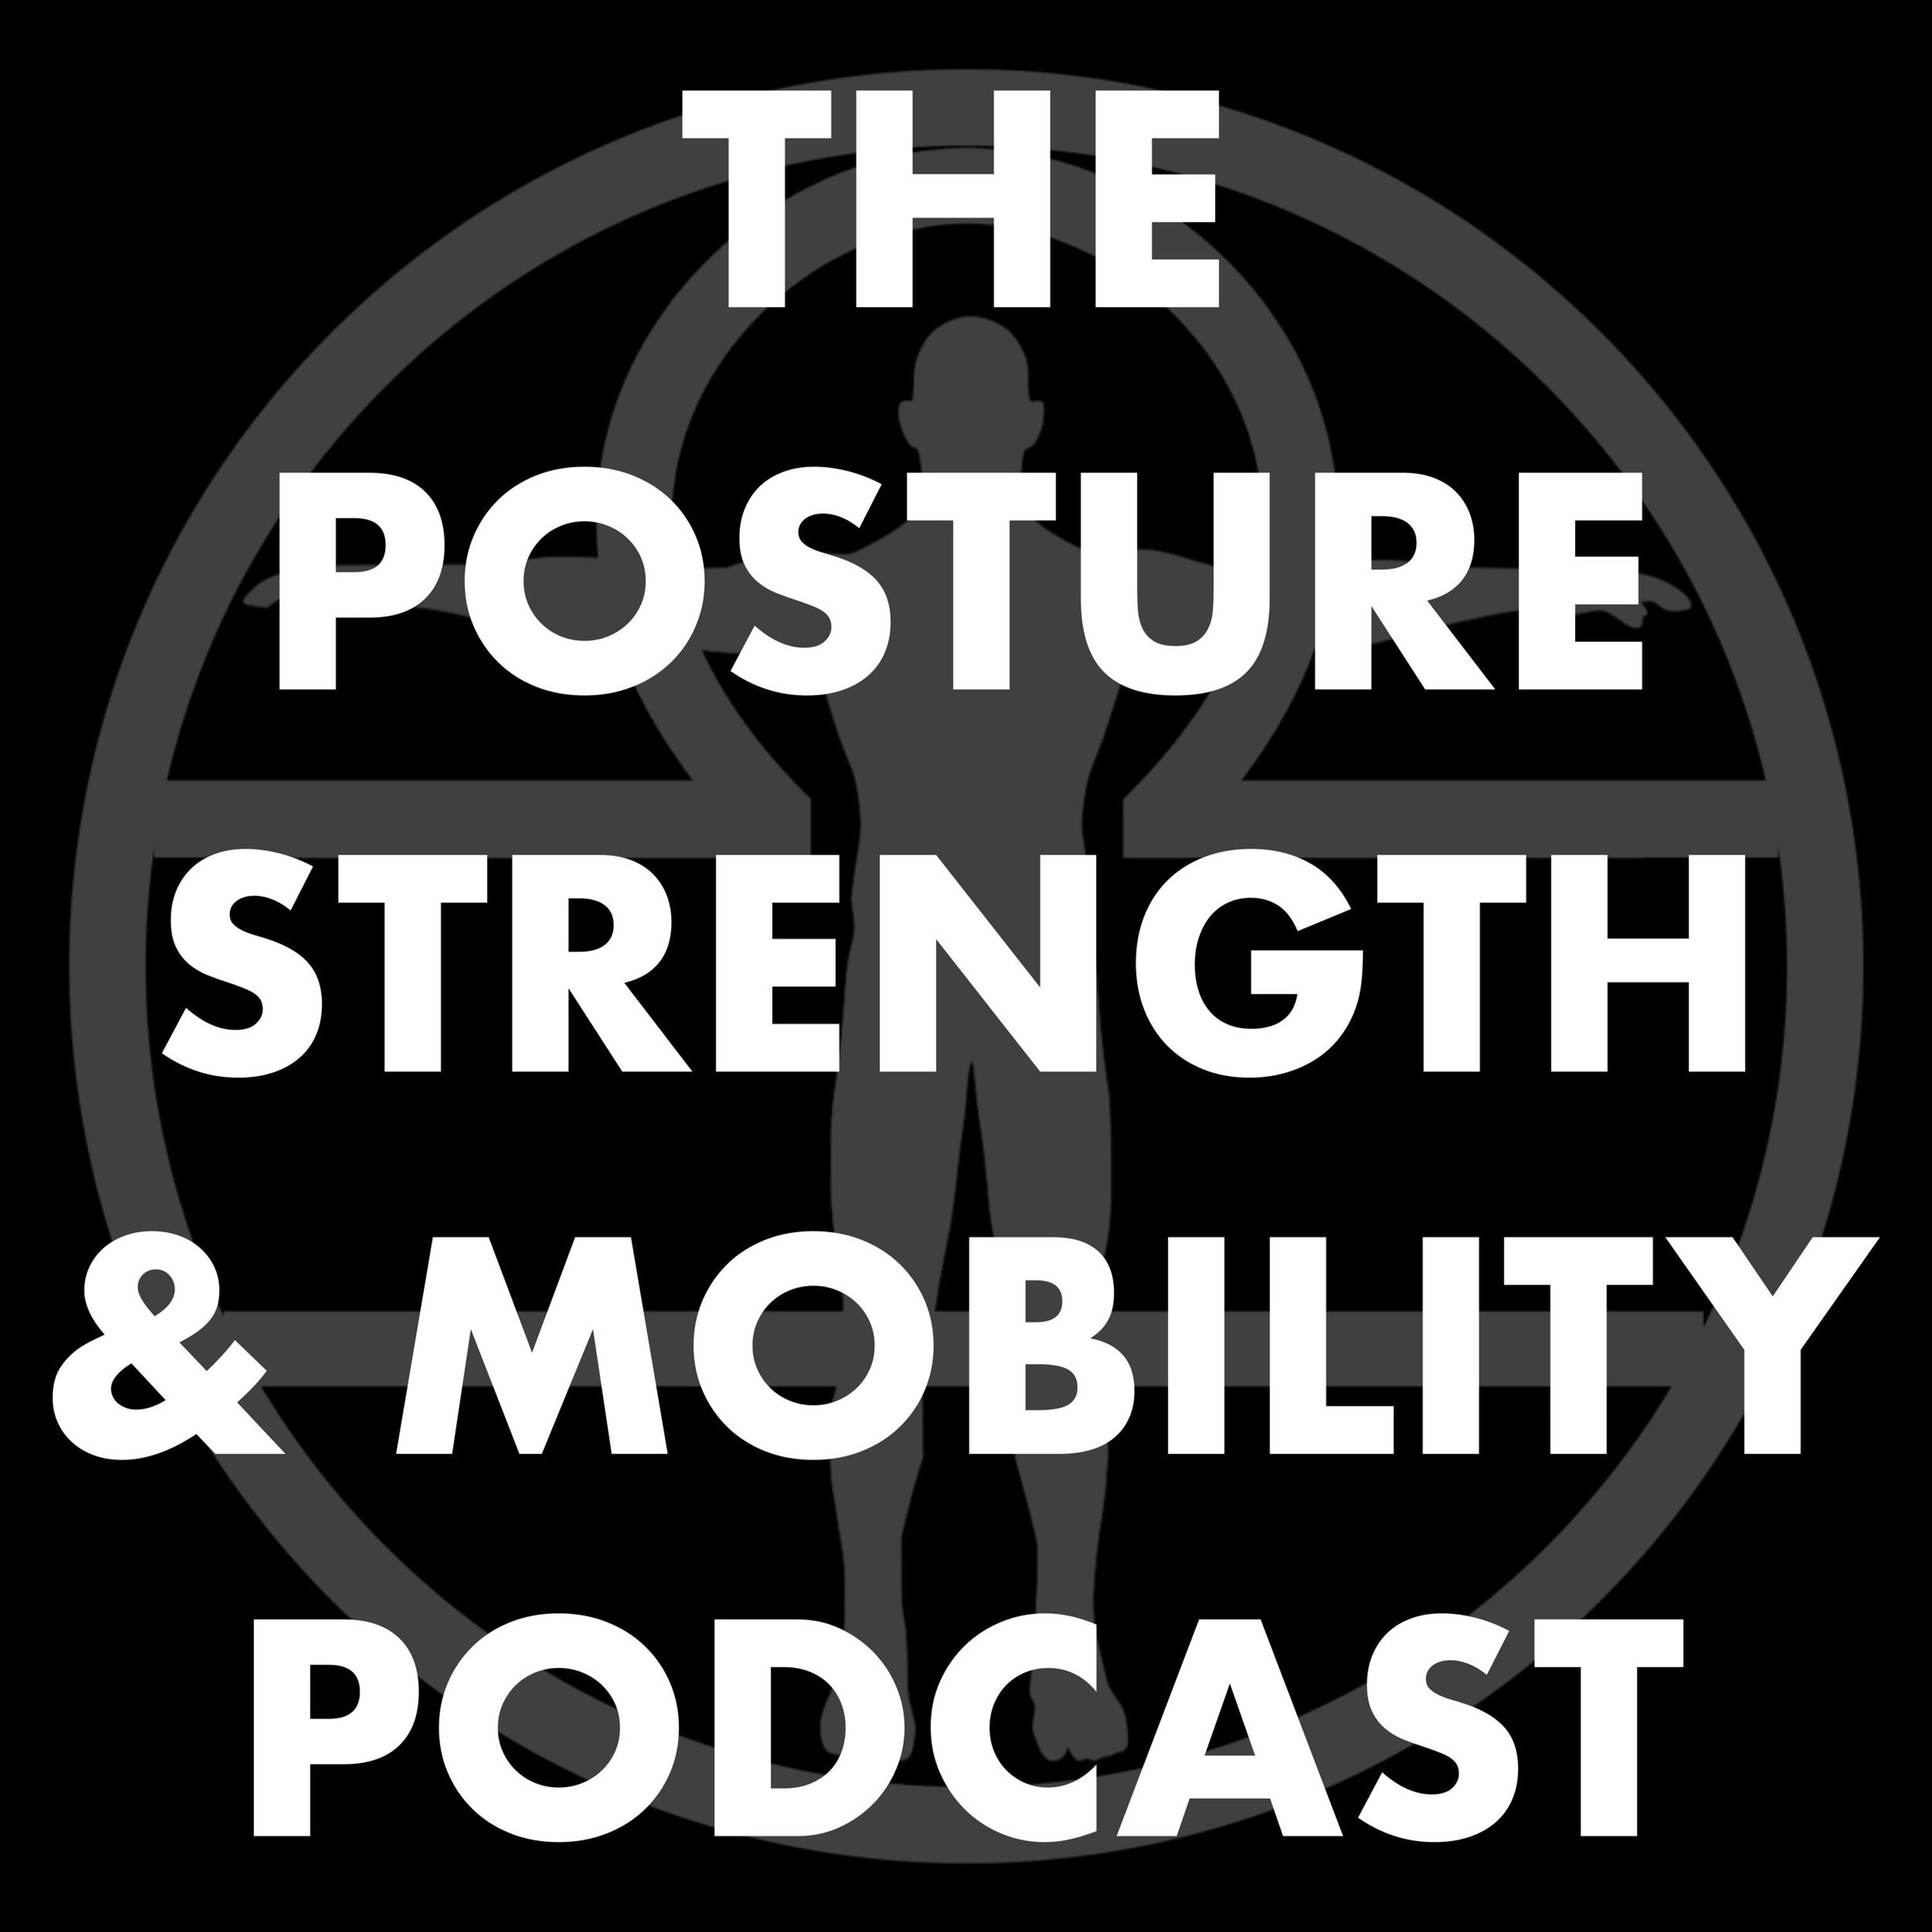 The Posture, Strength, & Mobility Podcast